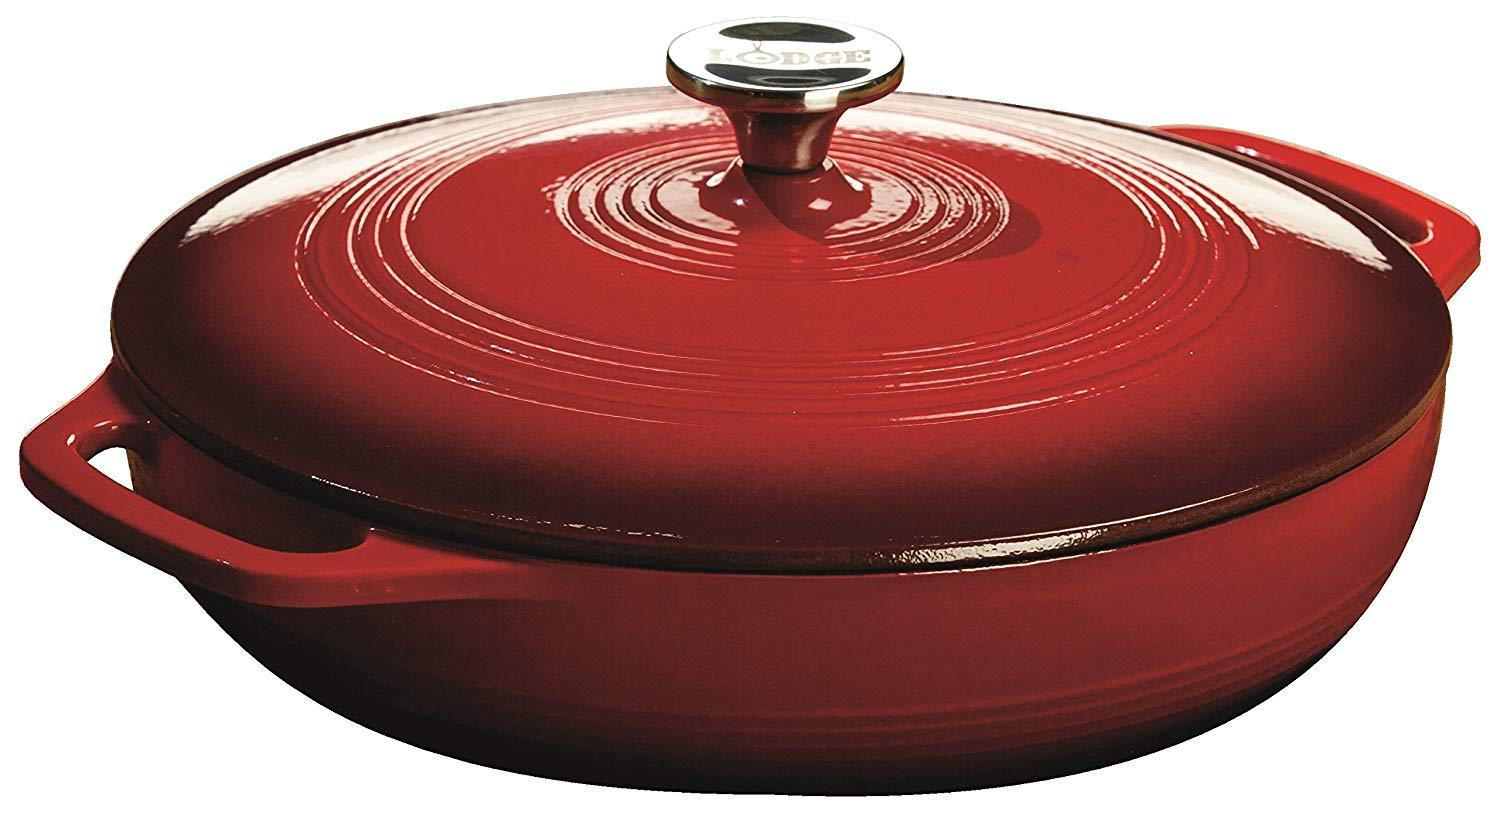 Lodge Enameled Cast Iron Covered Casserole, 3.6 Quart / 3.41 Liters By Pots.